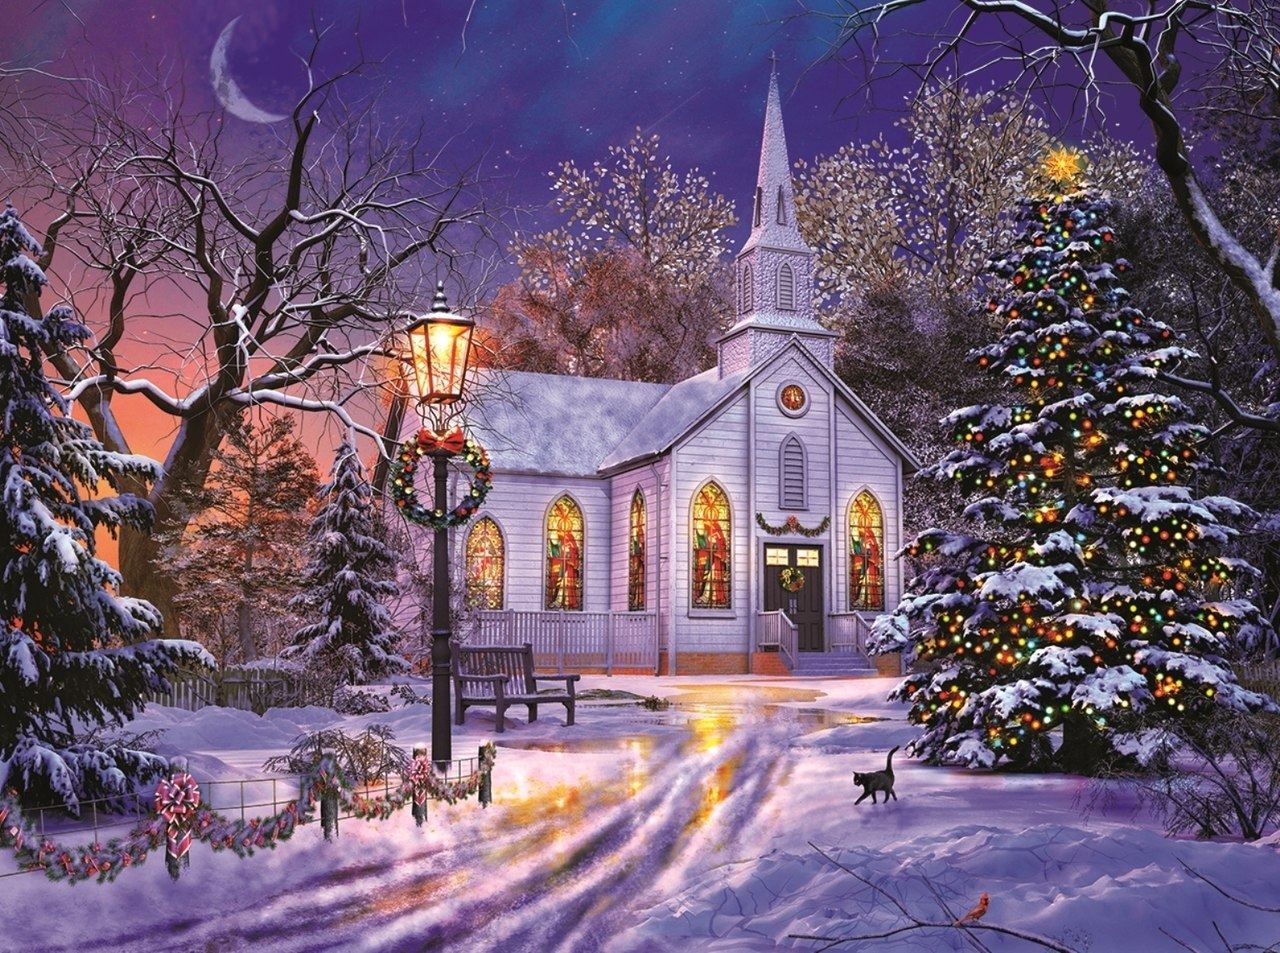 The Old Christmas Church - 1000pc Jigsaw Puzzle By Sunsout  			  					NEW